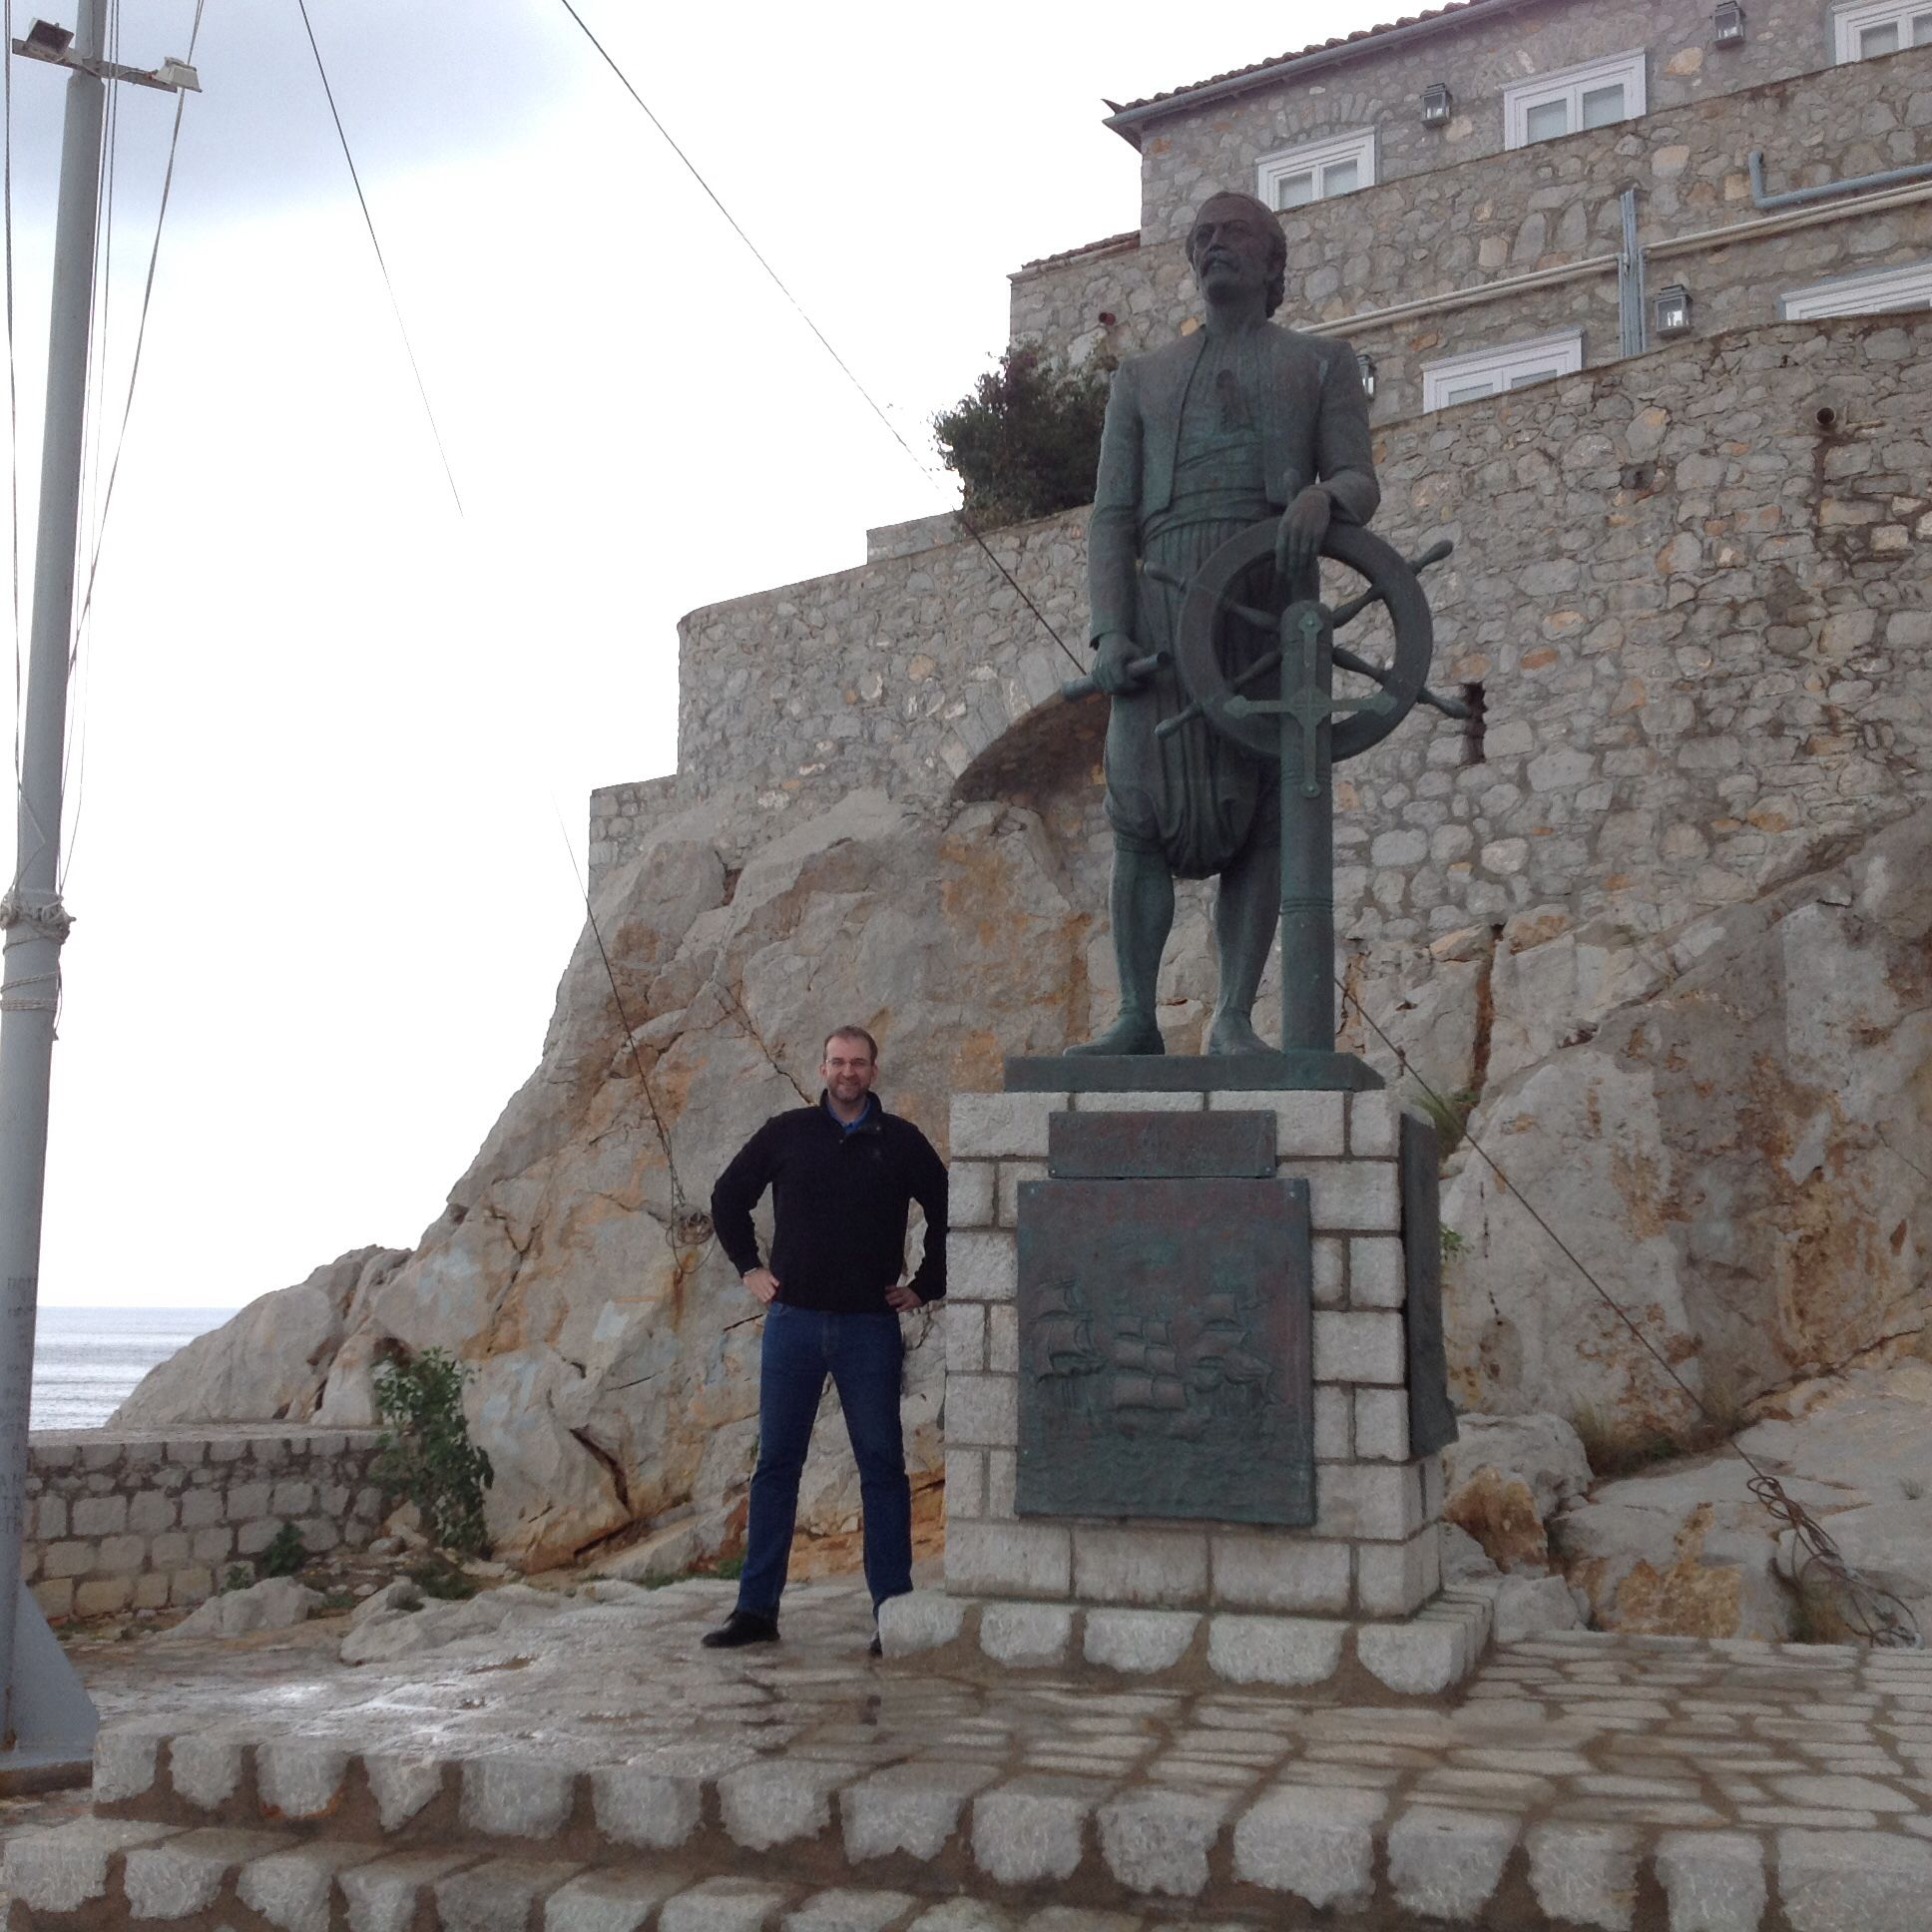 Statue of Andreas Miaoulis, admiral during the Greek War of Independence. #Hydra #island #Greece #Hellas #Ellada #war #hero #independence #travelling #selfie janholmberg.weebly.com